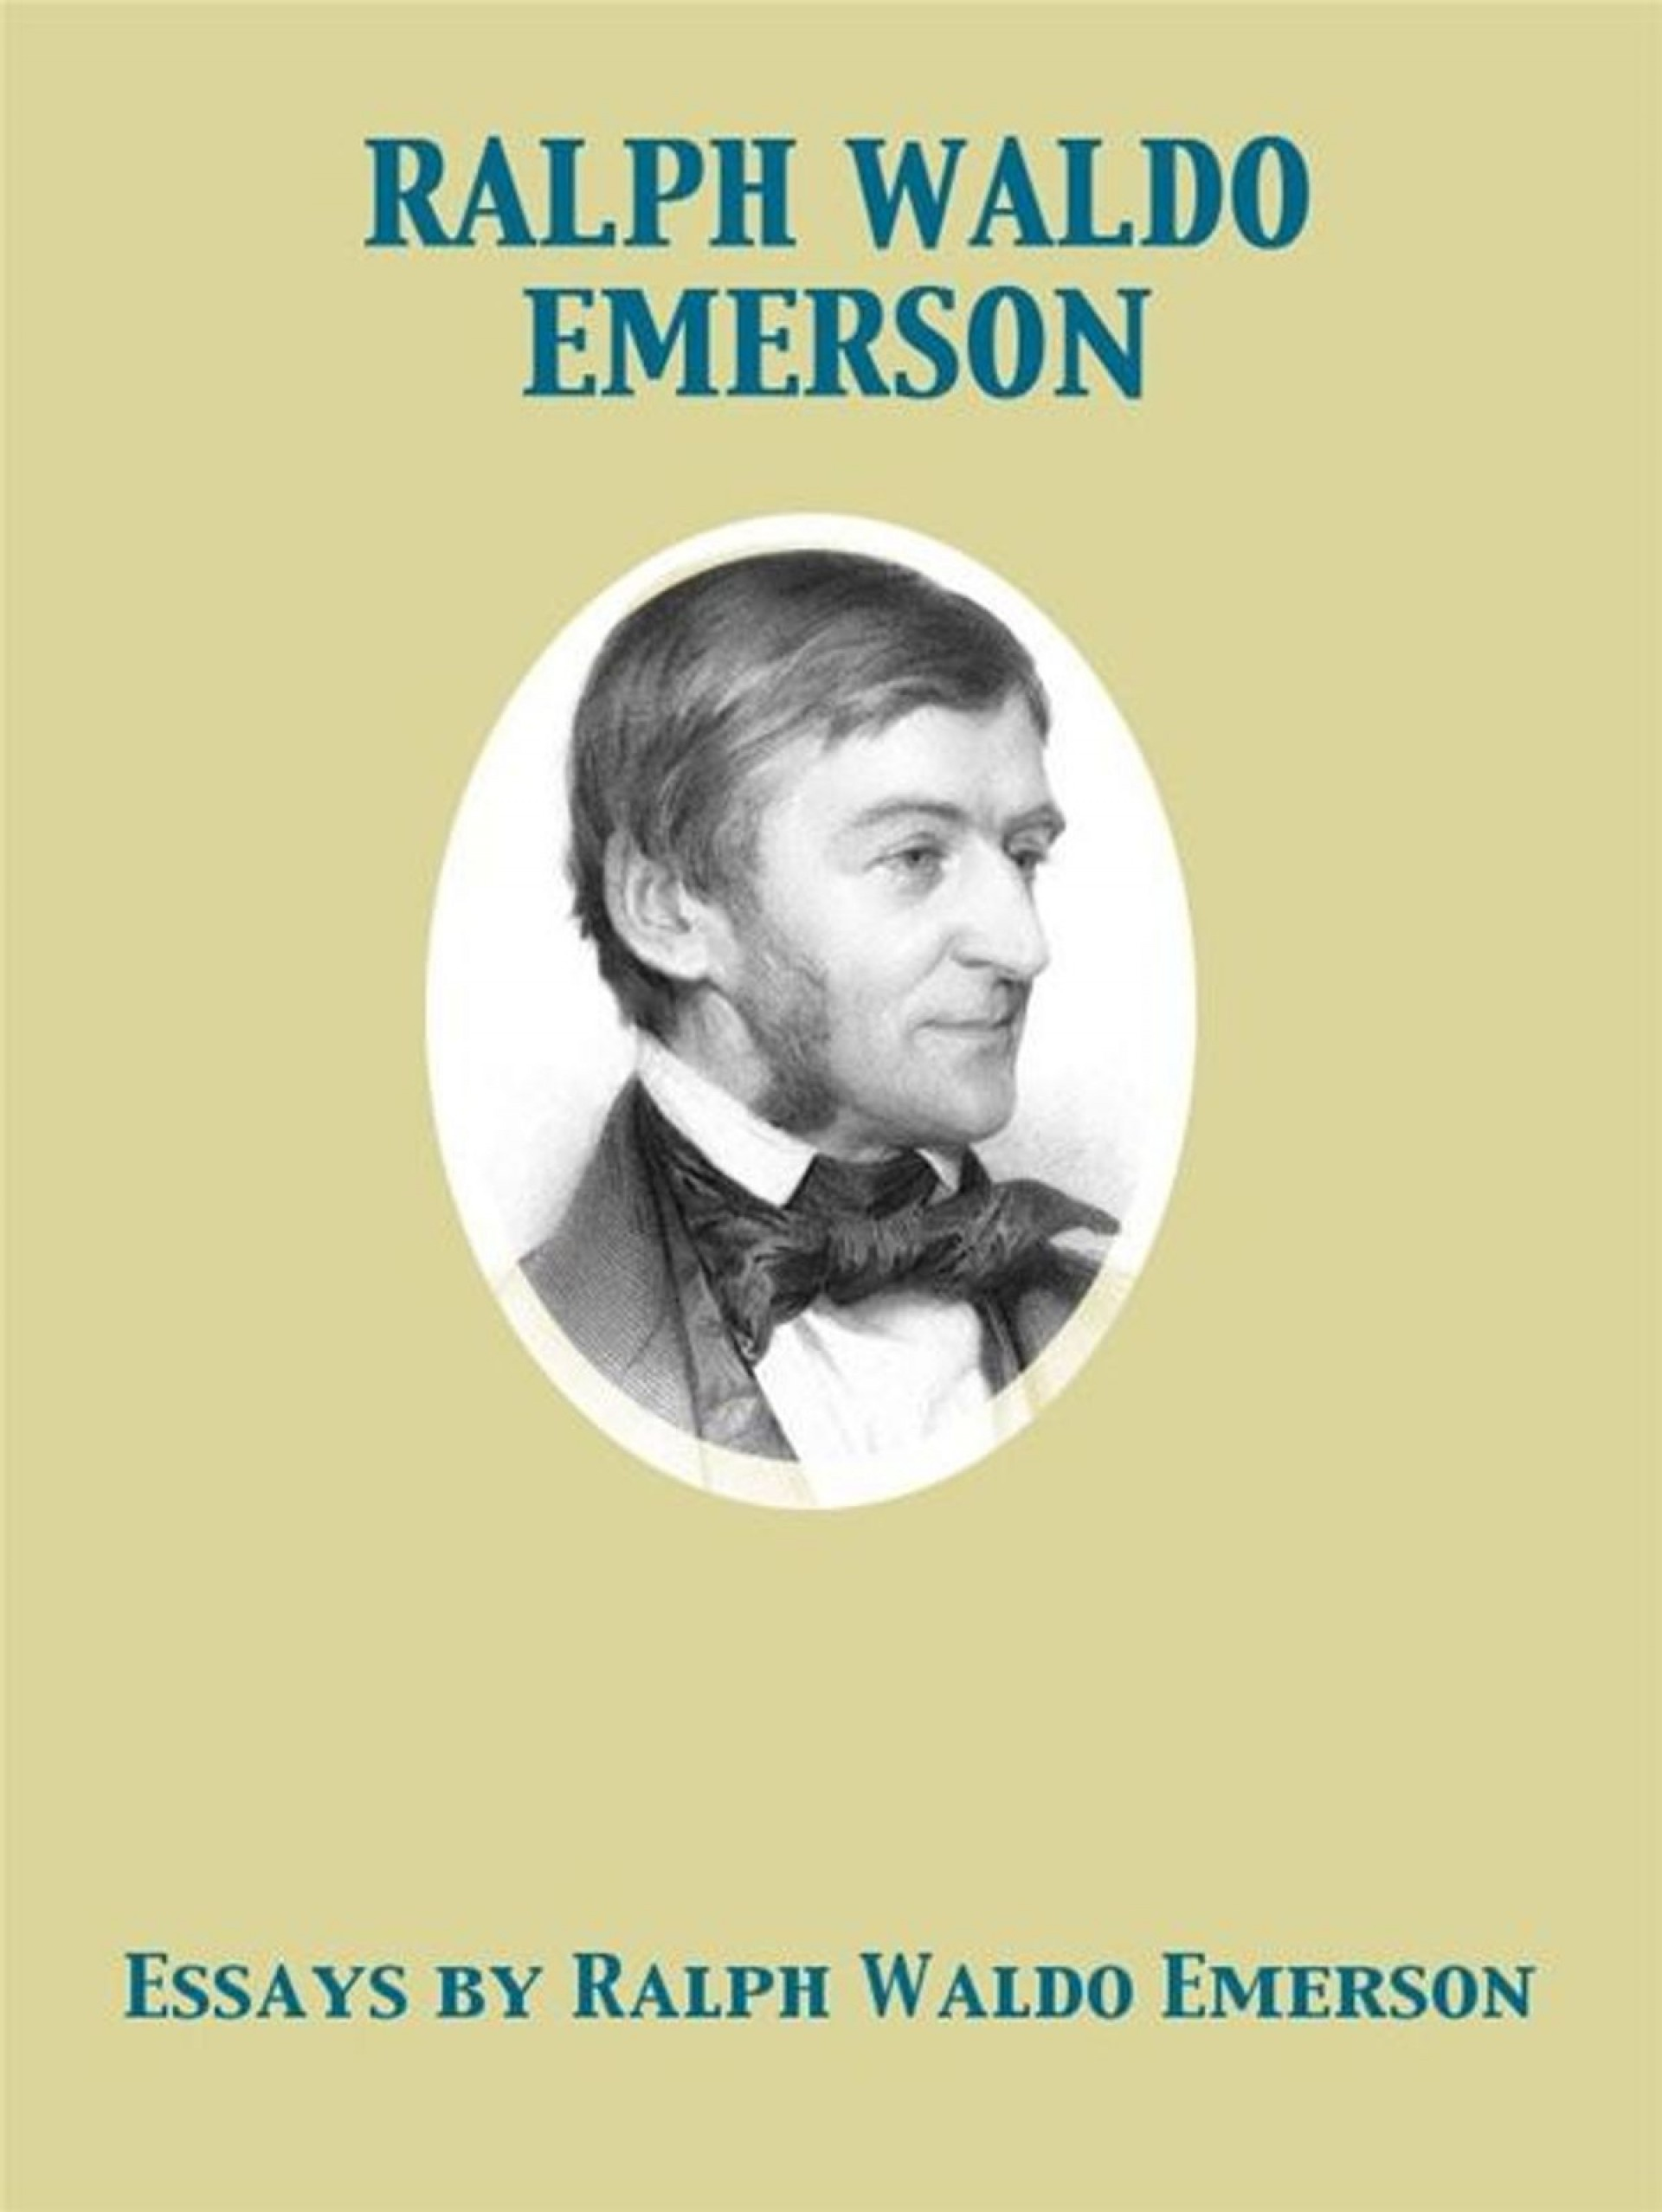 012 Essay Example Ralph Waldo Emerson Essays By Unusual Nature And Selected Pdf Download First Second Series 1920